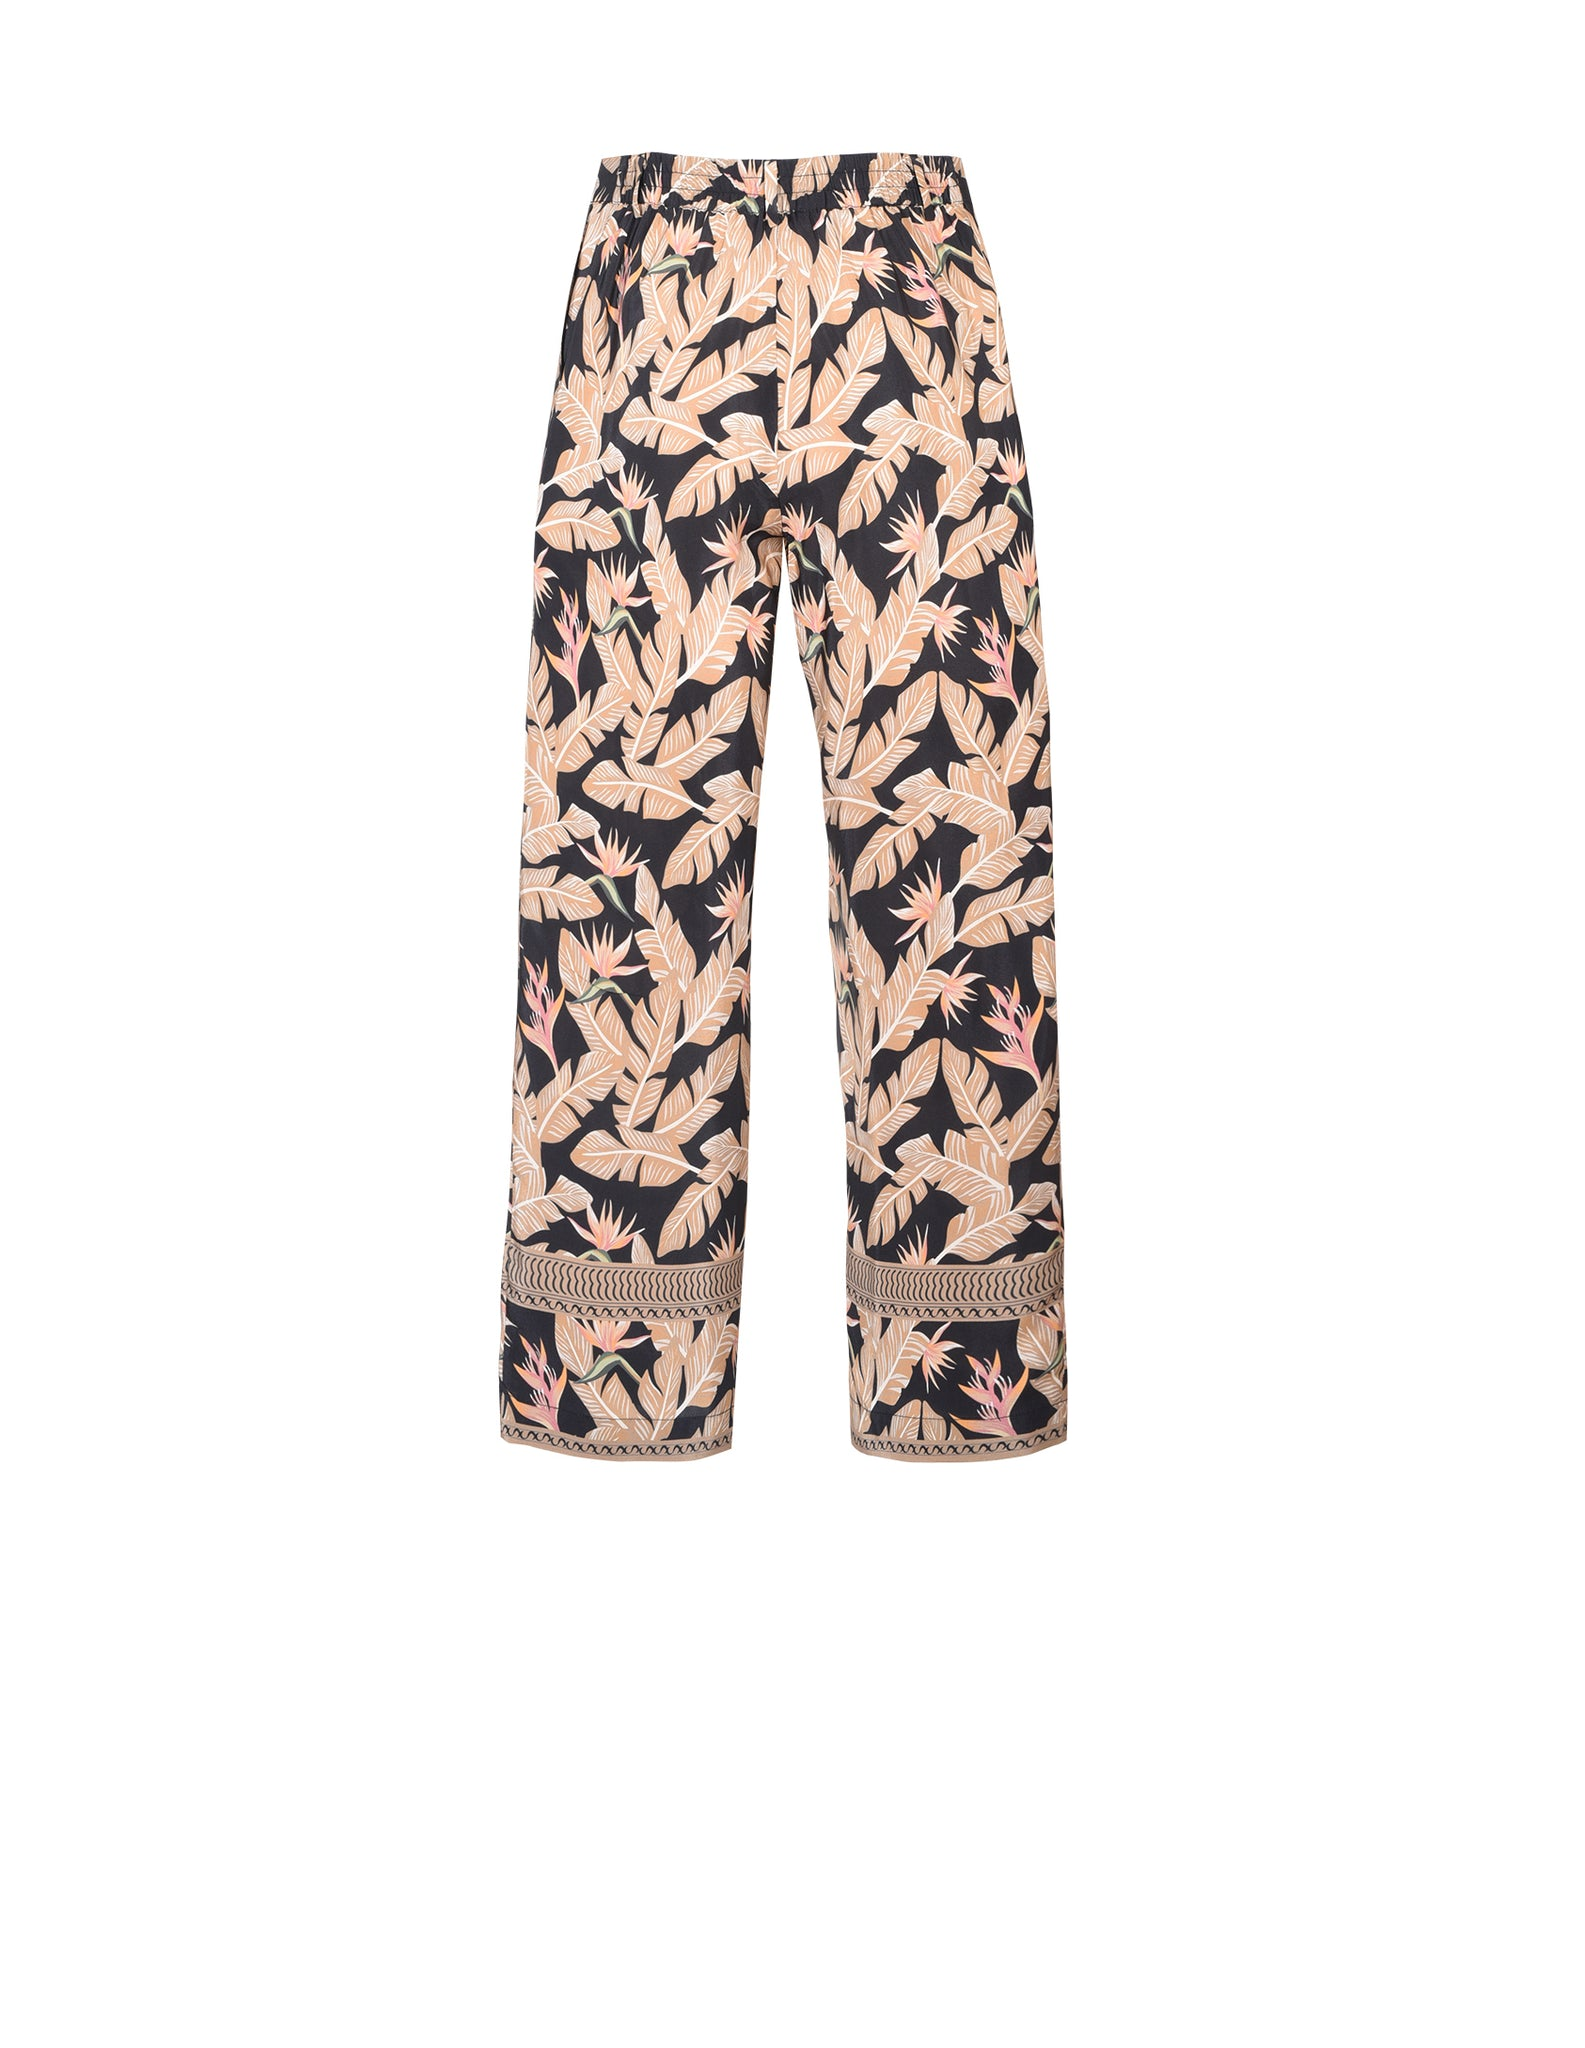 Tropical Print Pant - ISLE & ROW